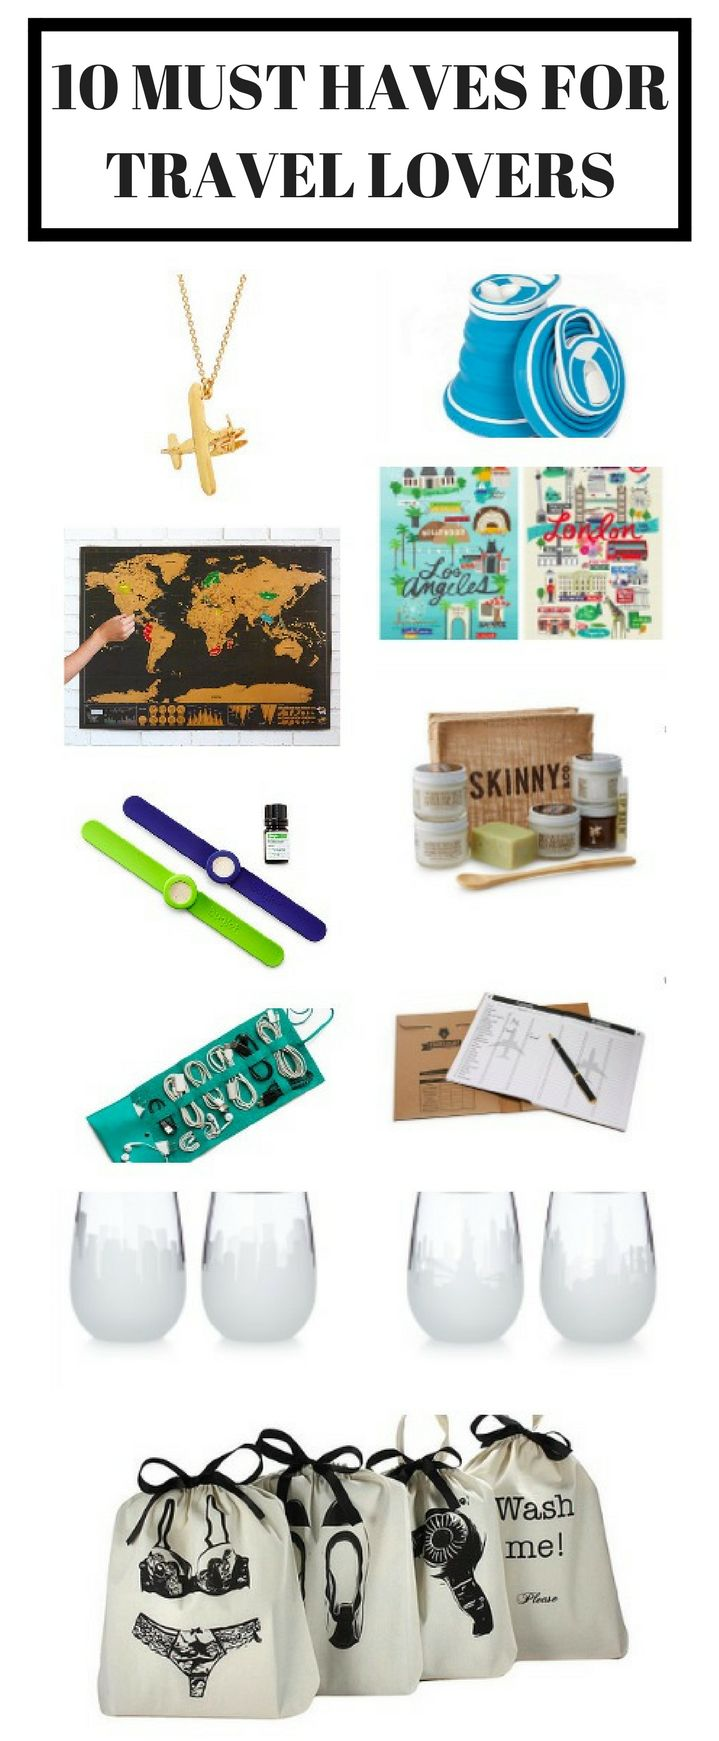 10 must have items for travel lovers / Are you a travel lover dreaming of faraway lands or exciting city trips? Check out the list of must have items for travelling & wanderlusting! / travel packing, travel list, packing bags, travel map, travel beauty